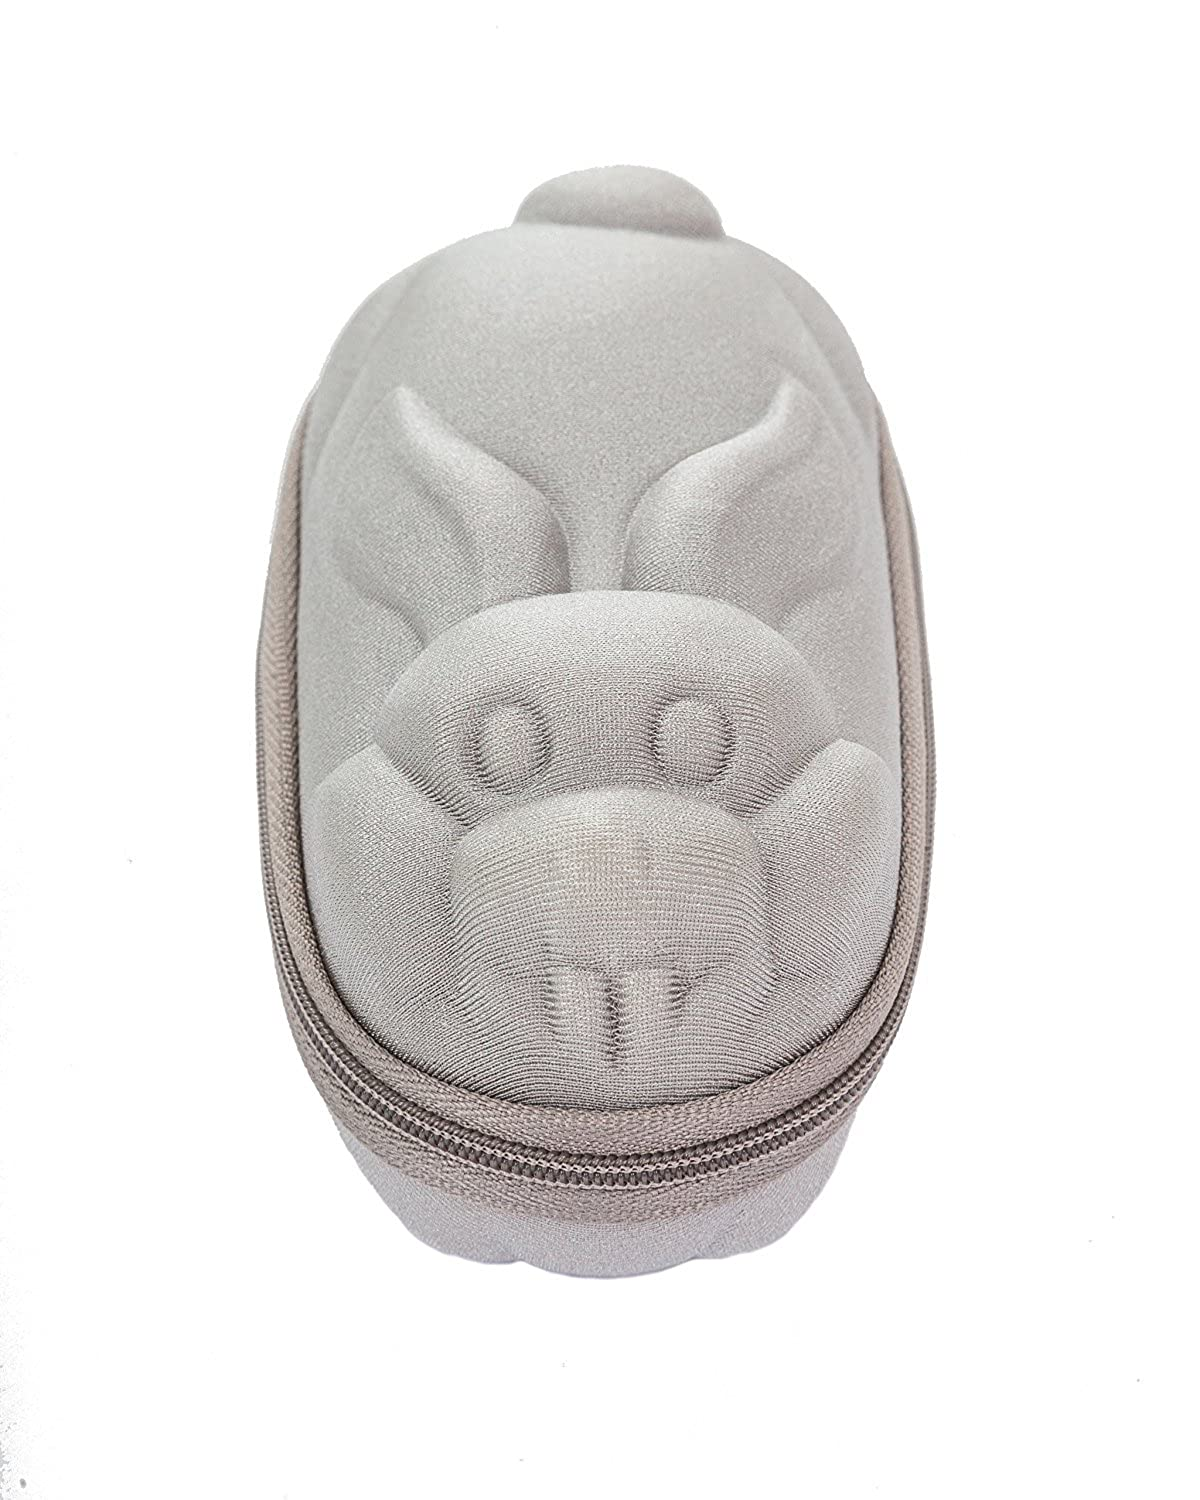 Baby Banz Sunglass Case Silver Rabbit